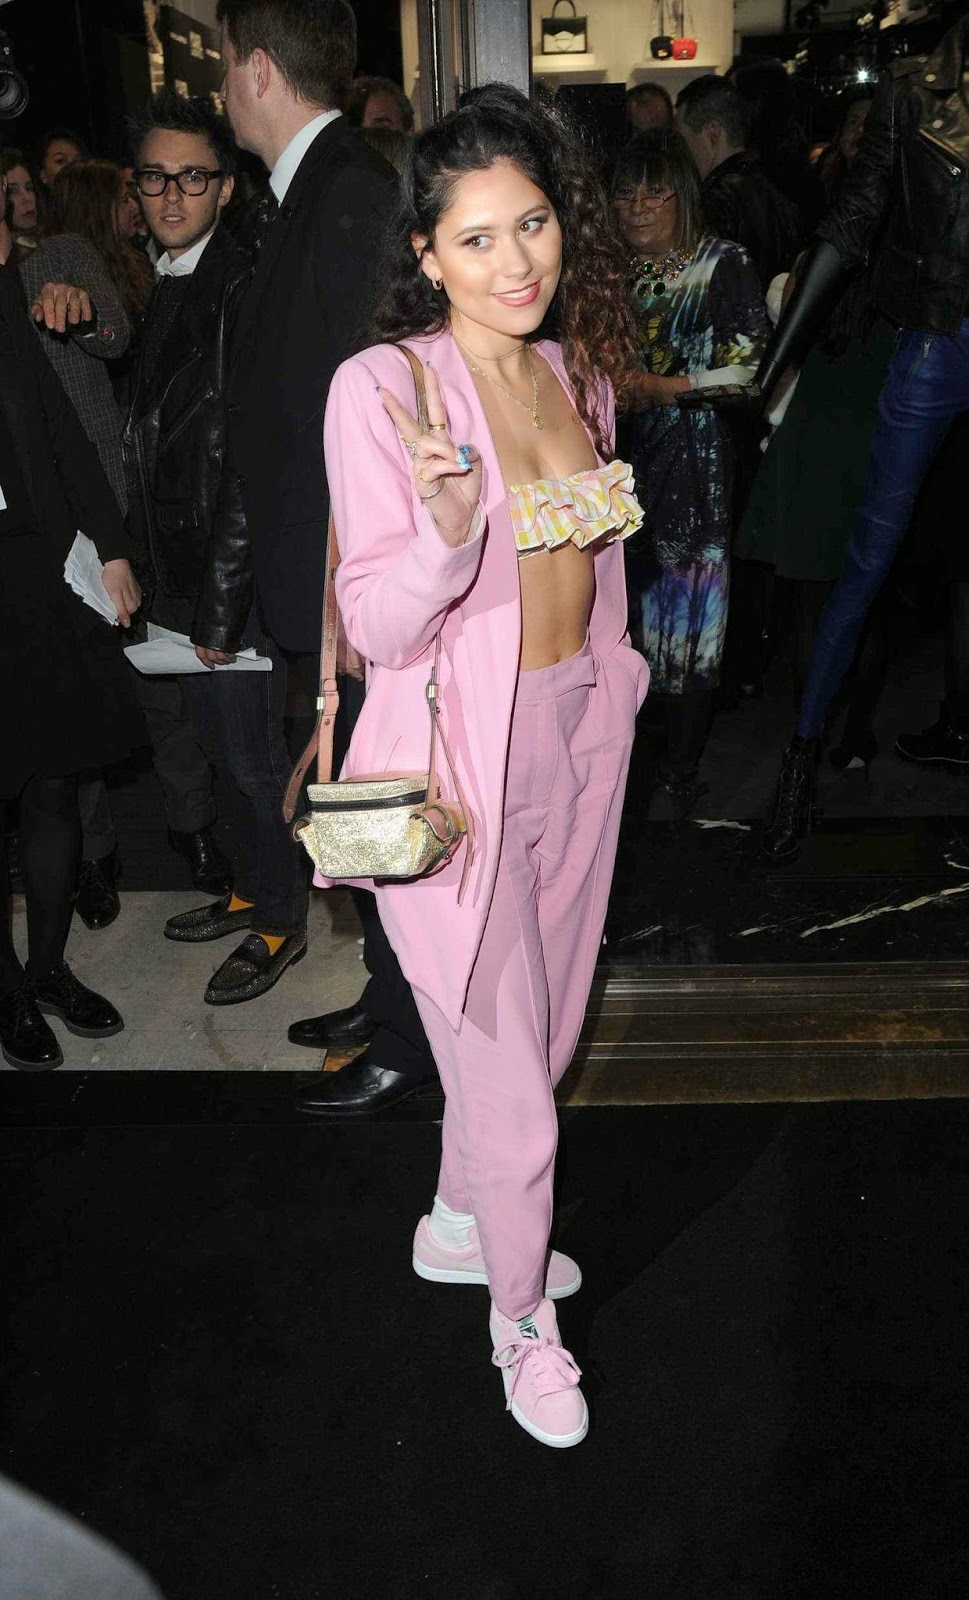 Eliza Doolittle wearing tube bikini top under the wide open pink outfit at Karl Lagerfeld's store opening in London